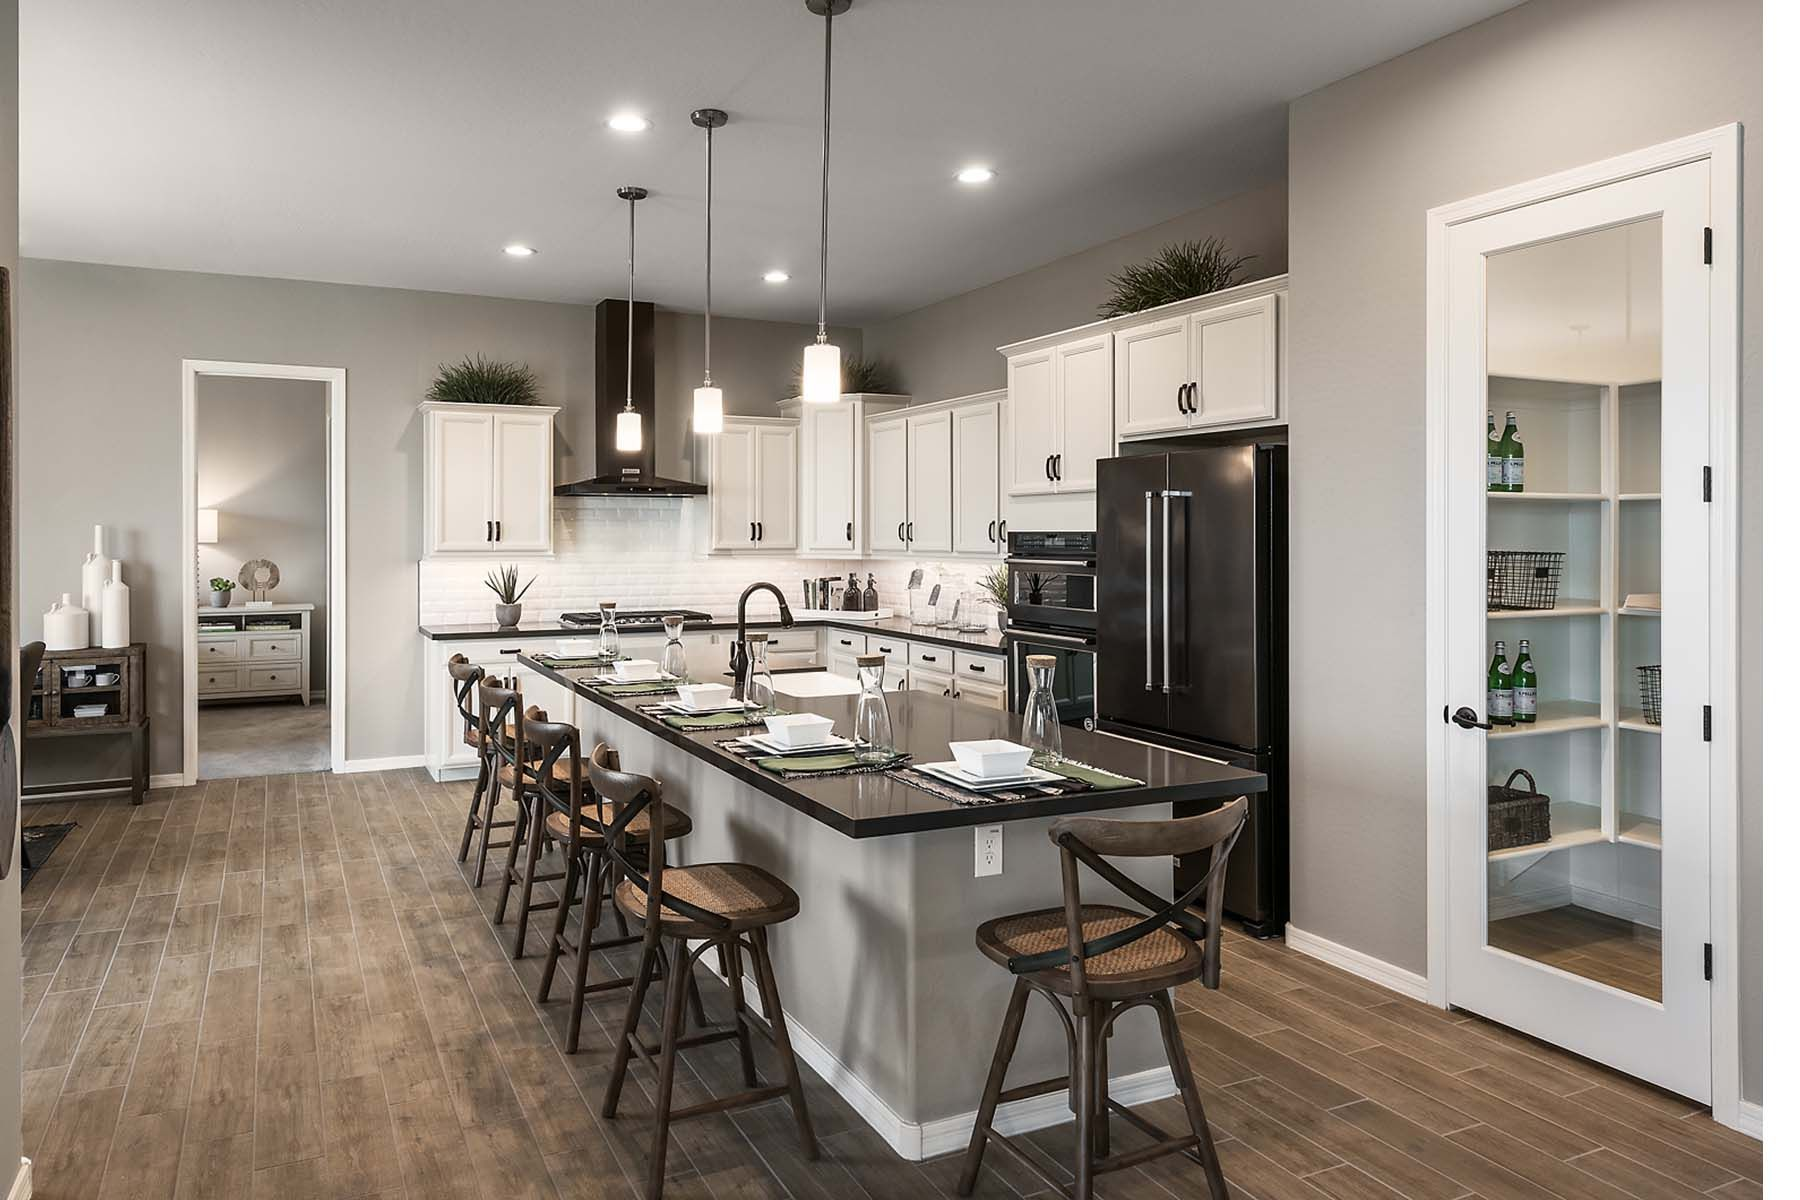 Kitchen featured in the Whitmore By Mattamy Homes in Phoenix-Mesa, AZ